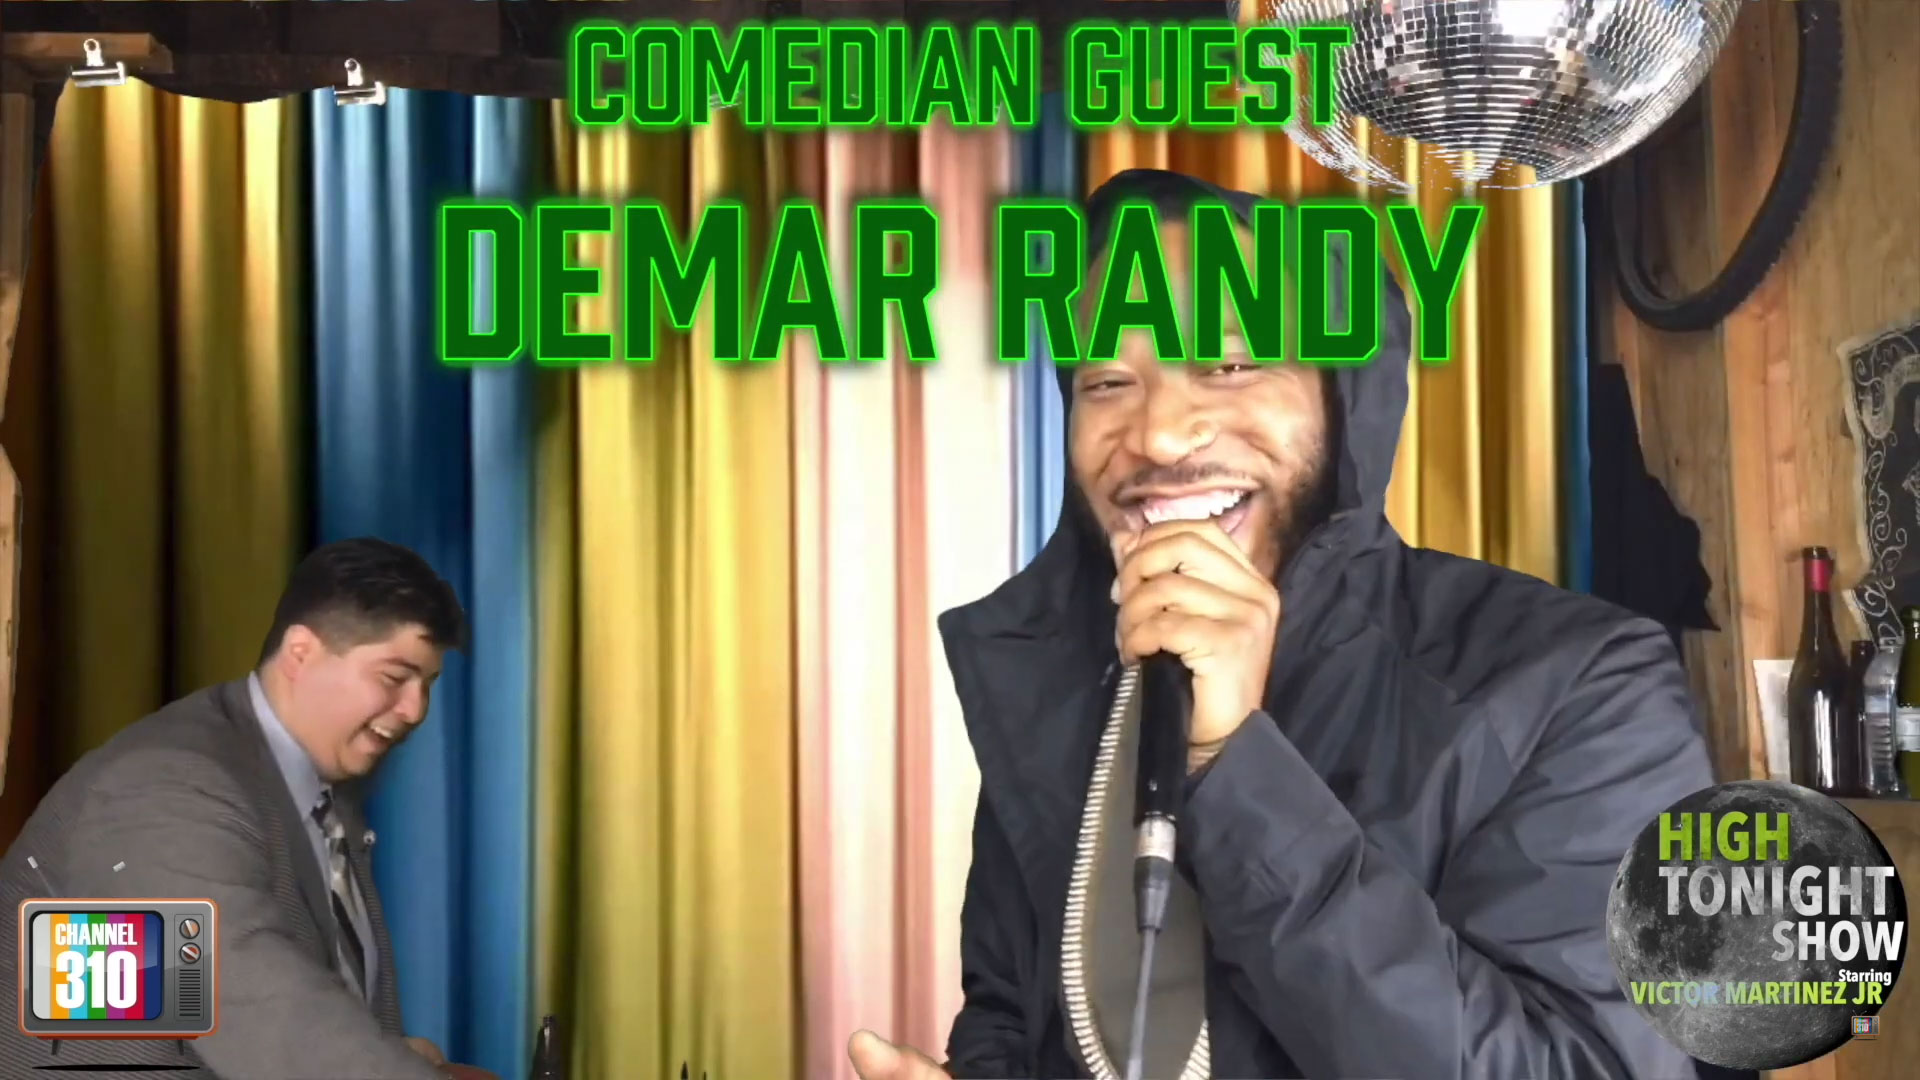 Comedian Demar Randy on The High Tonight Show